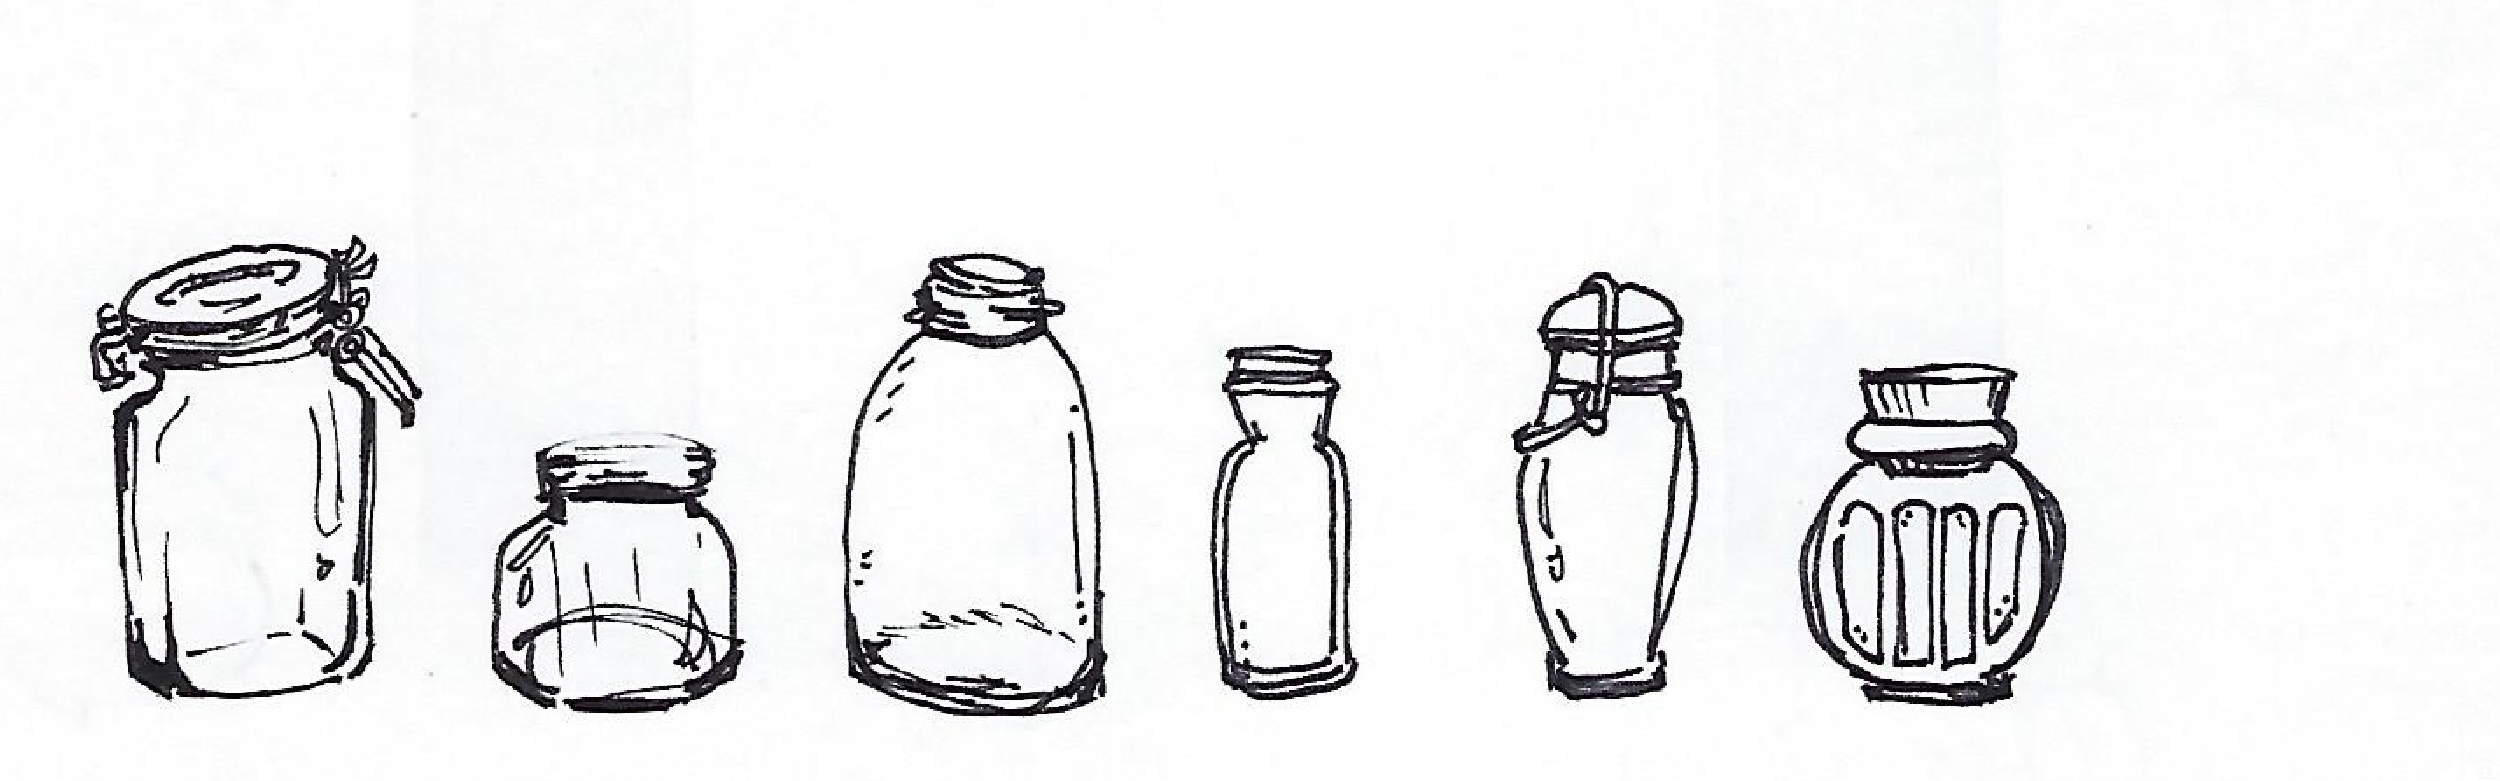 bottlesketch-01.jpg